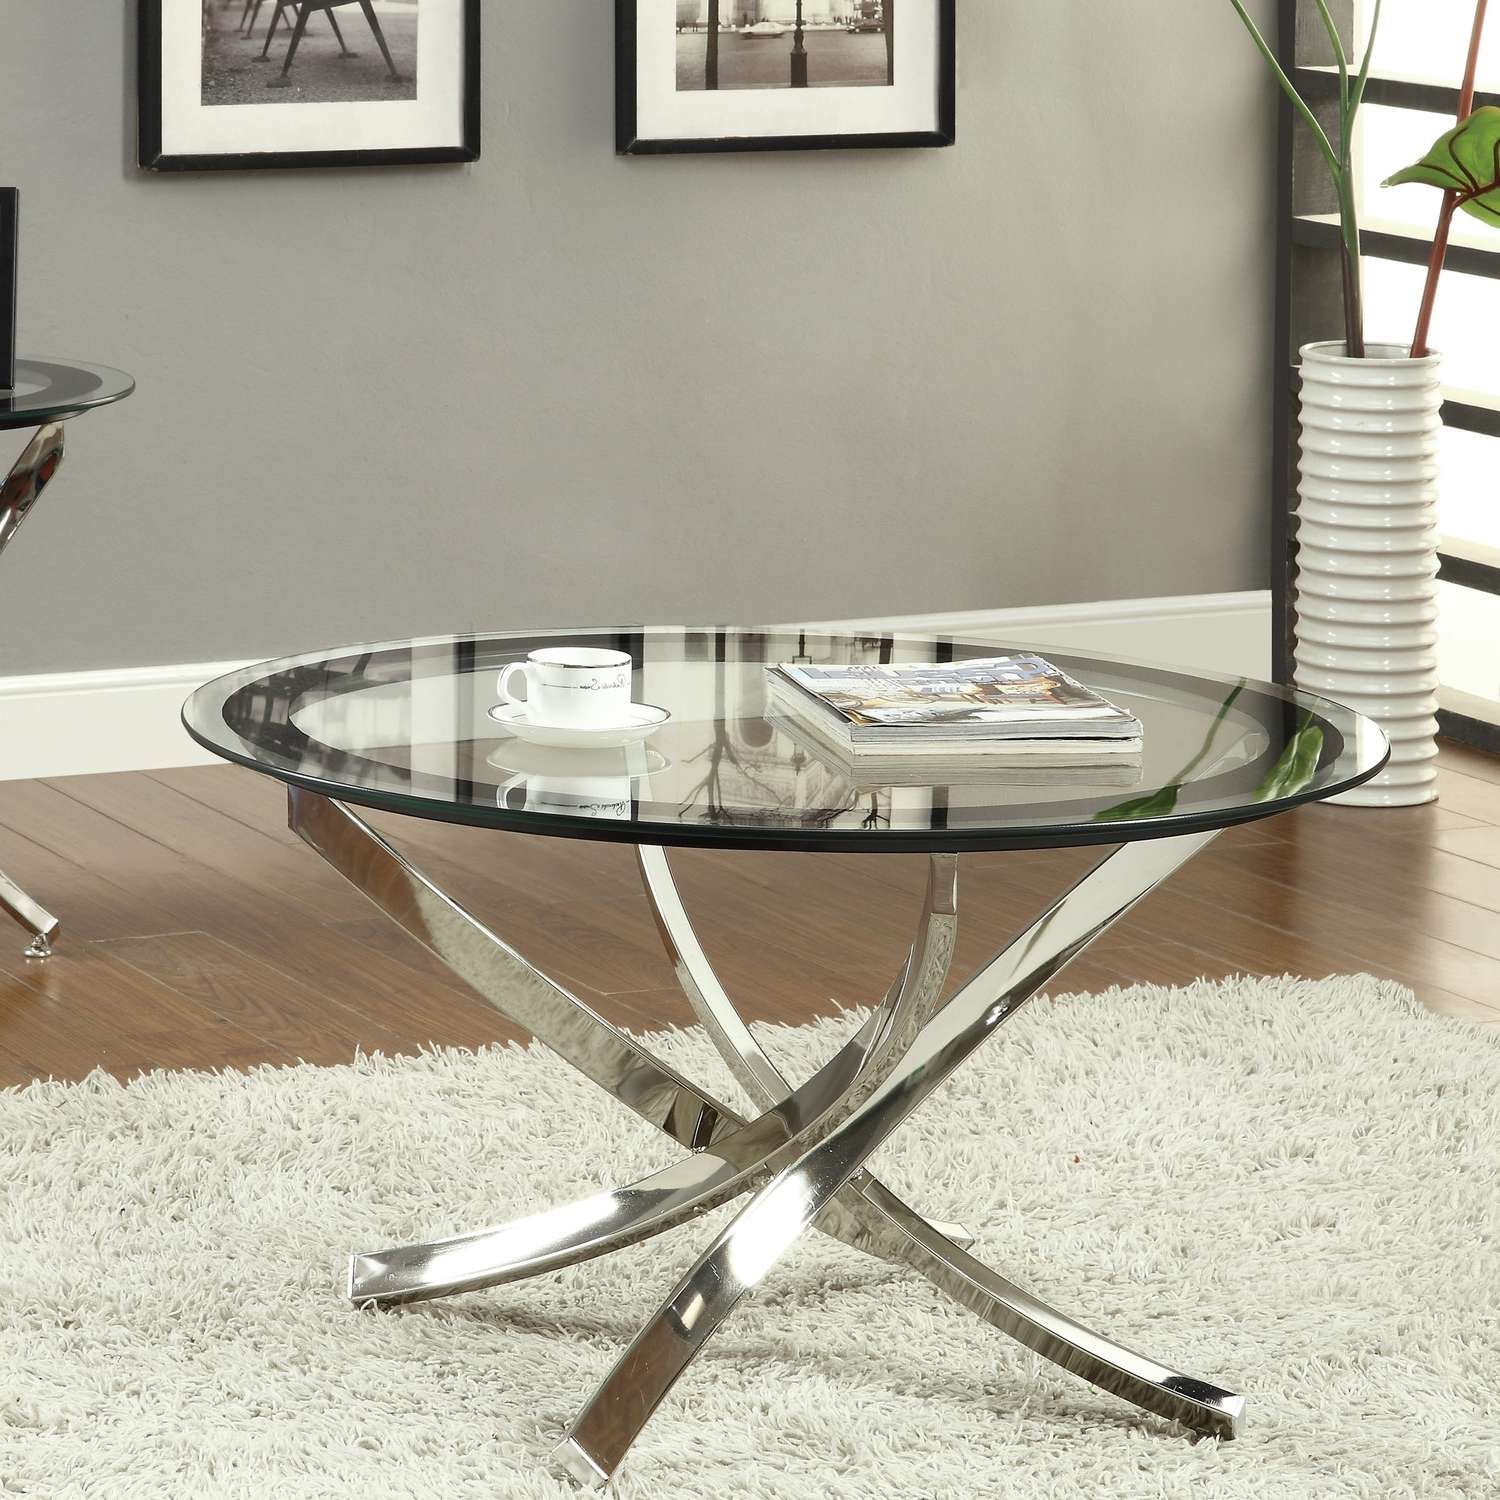 All Glass Pompidou Metal & Glass Coffee Table Large Table Regarding 2017 Coffee Tables Glass And Metal (Gallery 16 of 20)